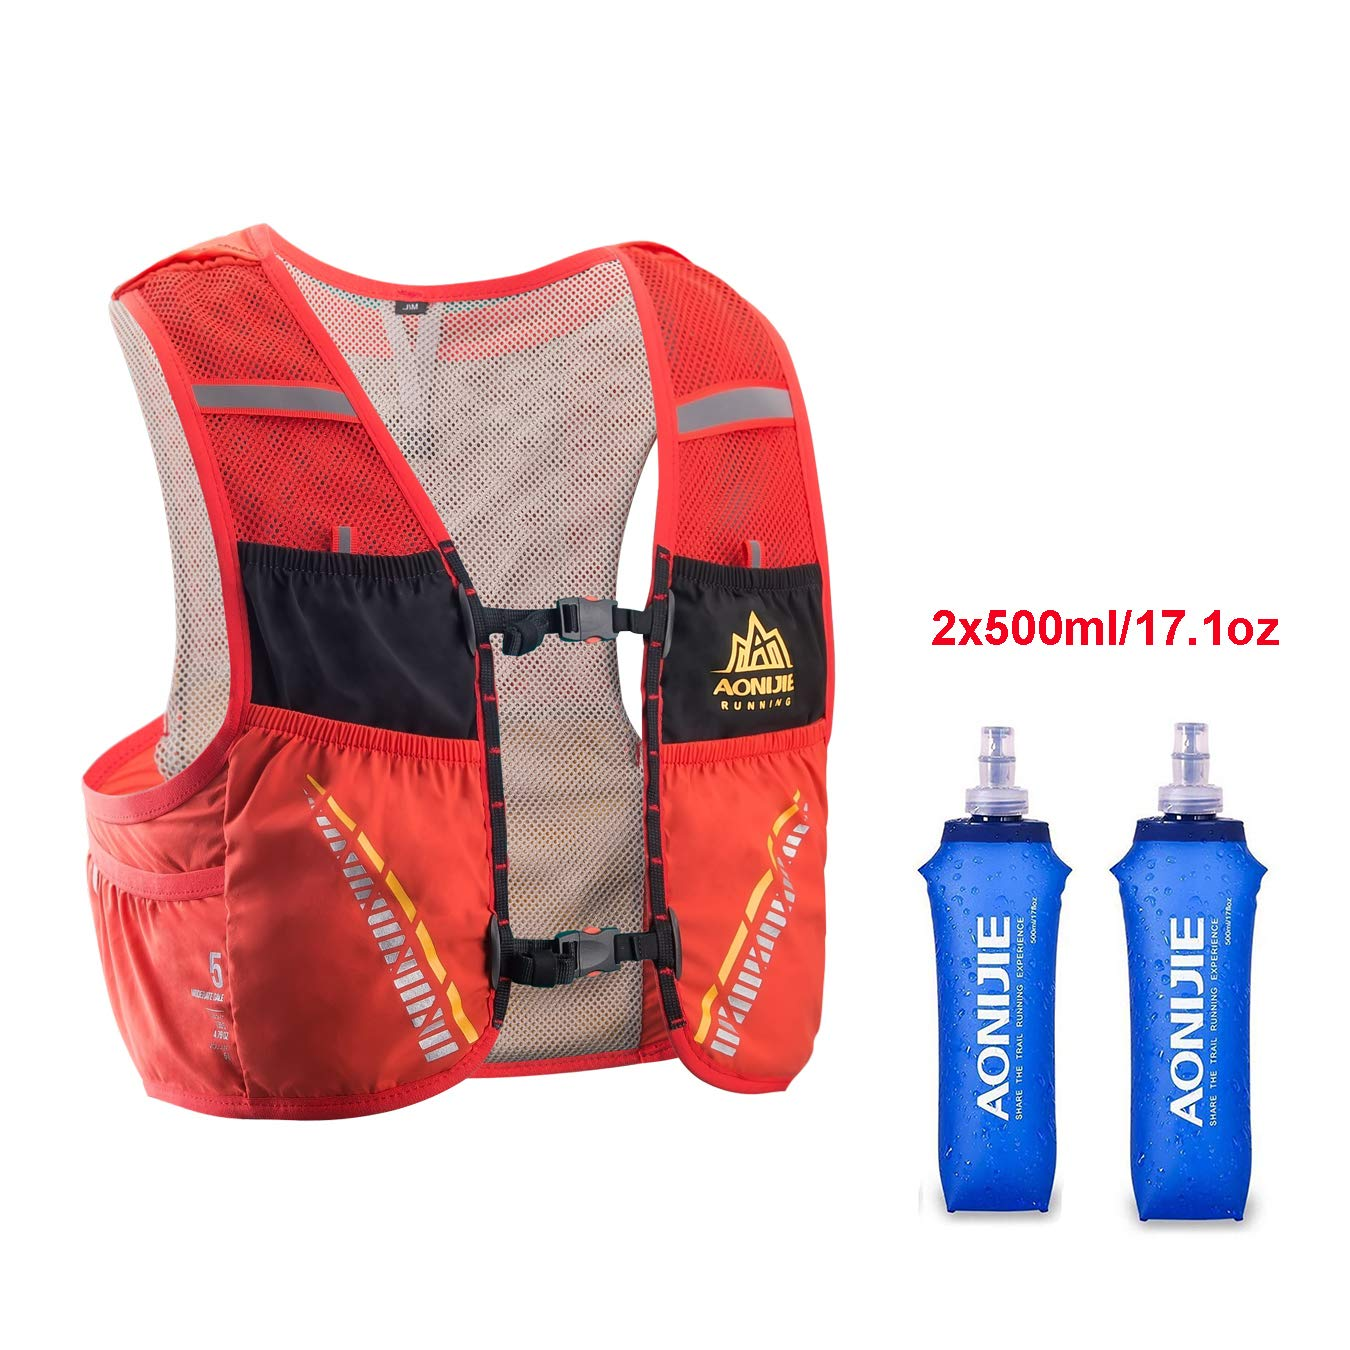 AONIJIE Hydration Pack Backpack with 2x500ml Water Bottles,Lightweight 5L Outdoor Marathoner Running Race Hydration Vest for Cycling Hiking (Black&Red, S/M(29.5-33in))